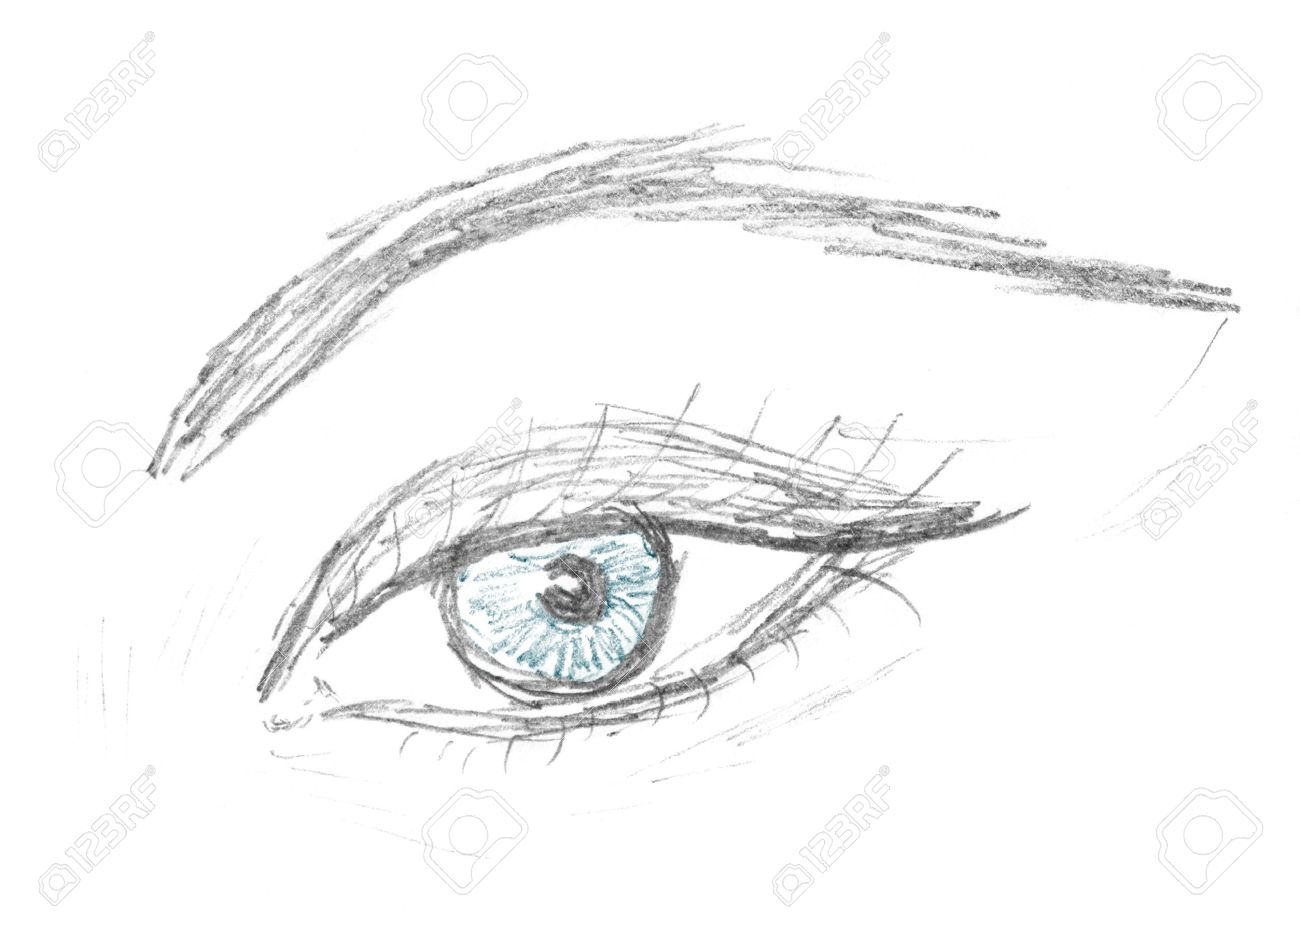 Human eye and eyebrow sketch pencil drawing stock photo 6513358